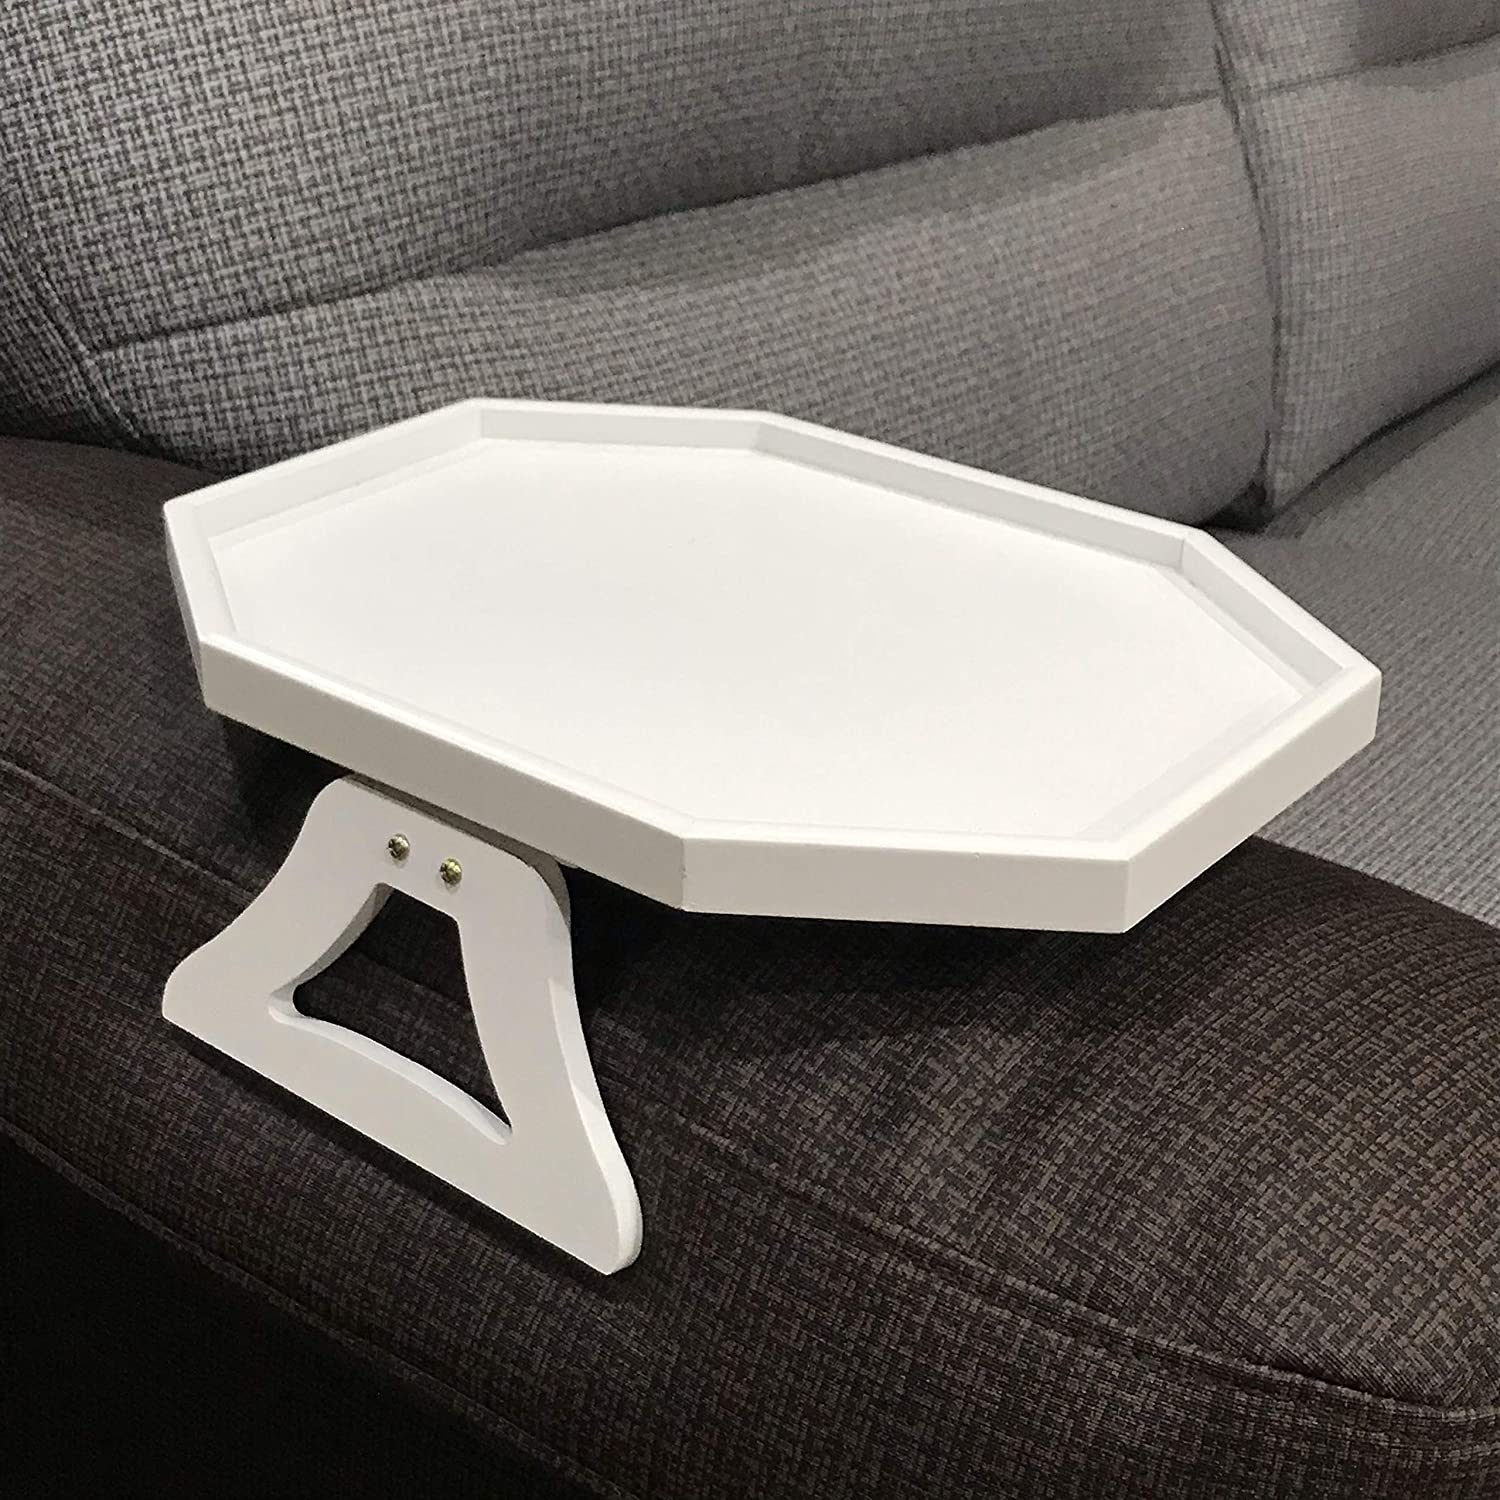 Wooden Sofa Armrest Clip-On Table, Recliner Armchair Organizer Tray (White)